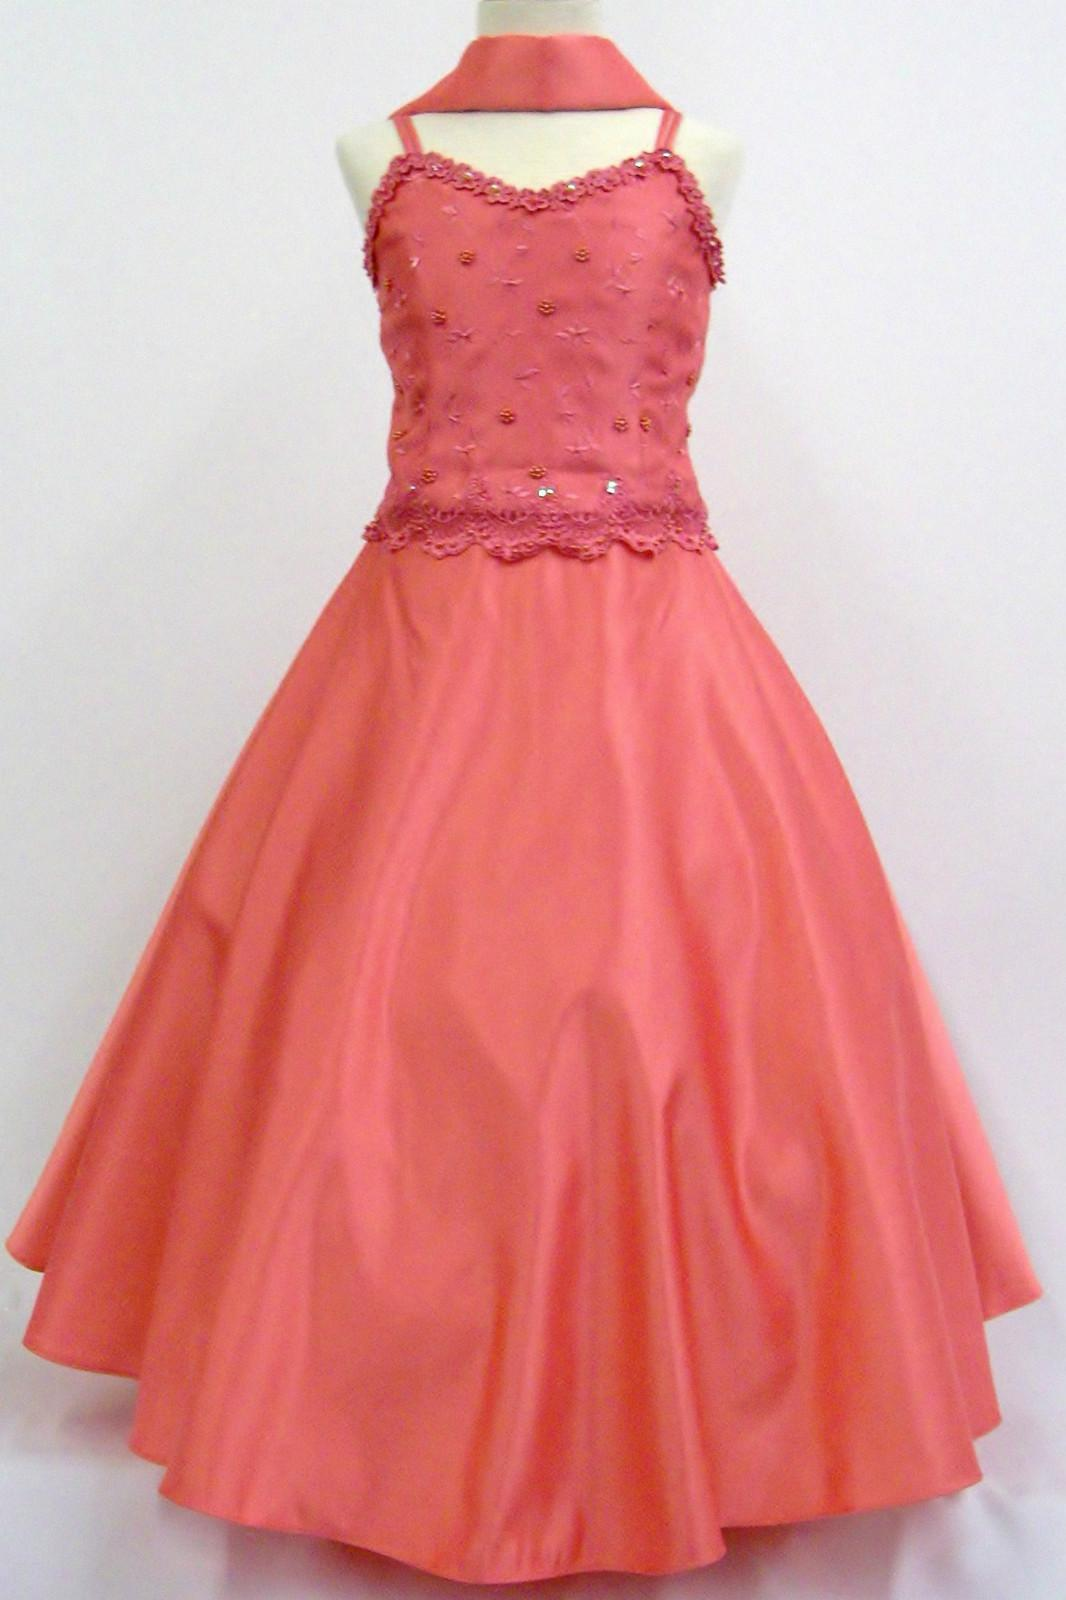 Girls party dresses size 14-16